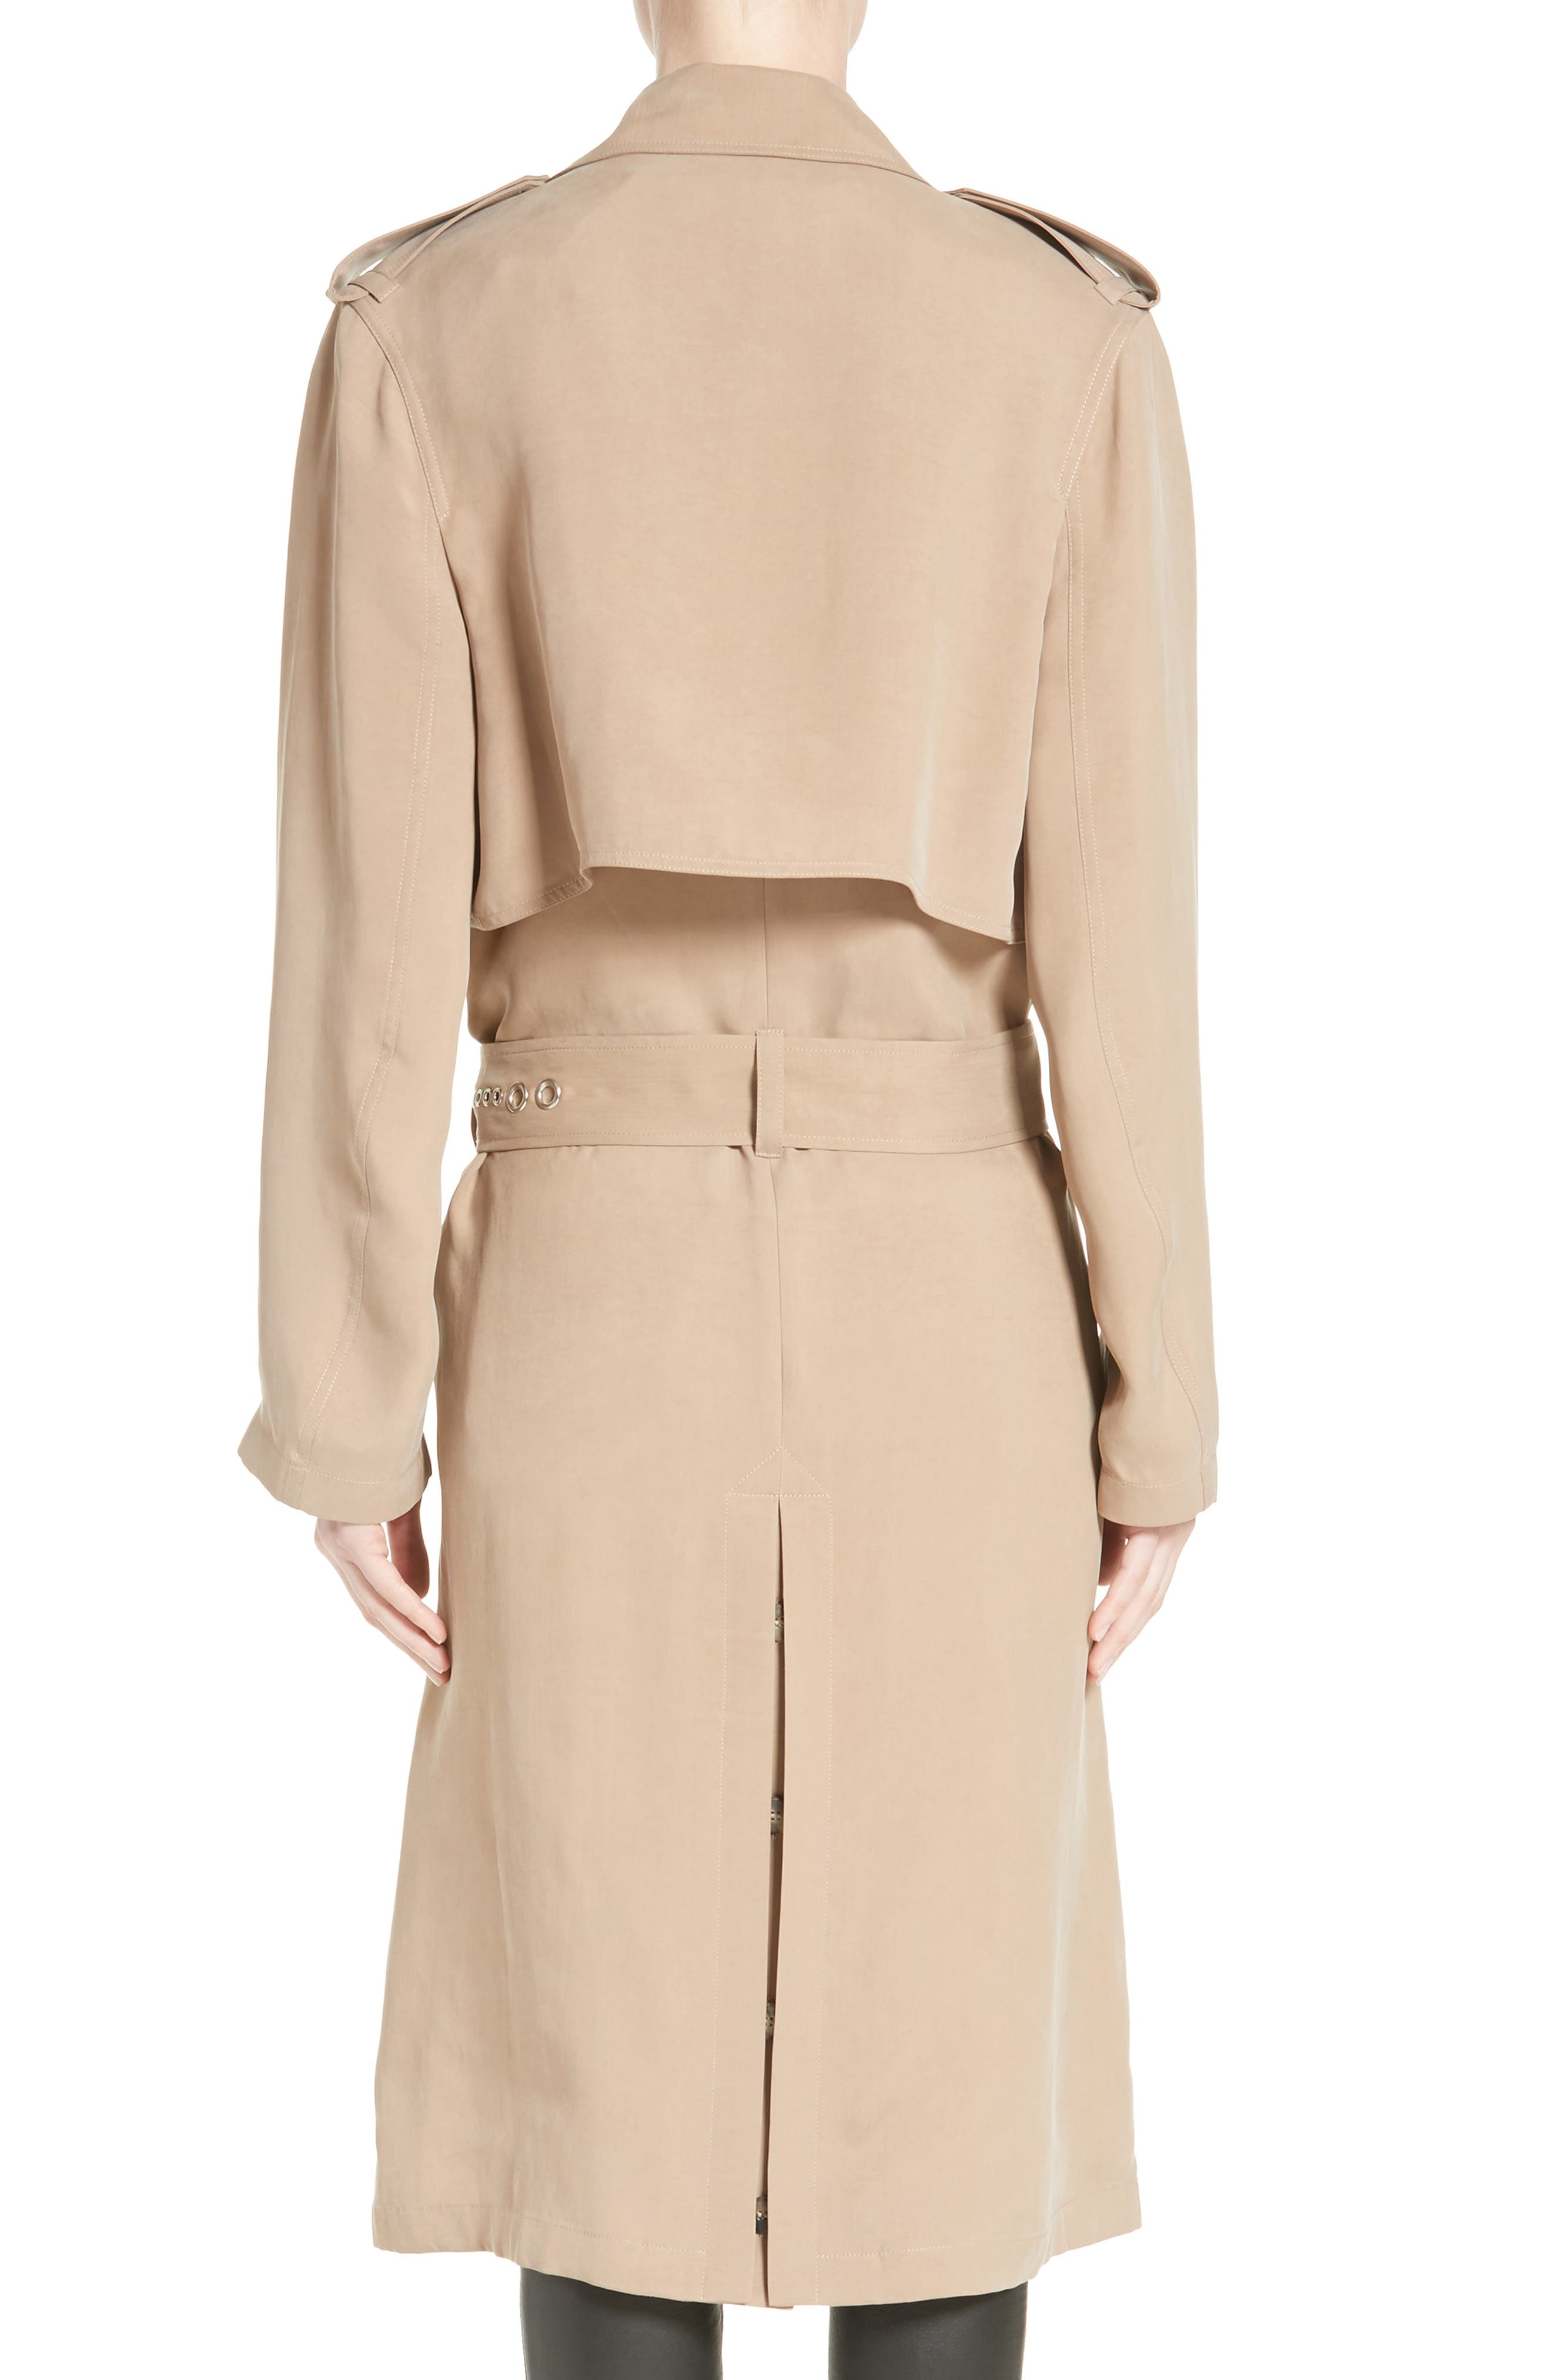 Pierced Trench Coat,                             Alternate thumbnail 2, color,                             200